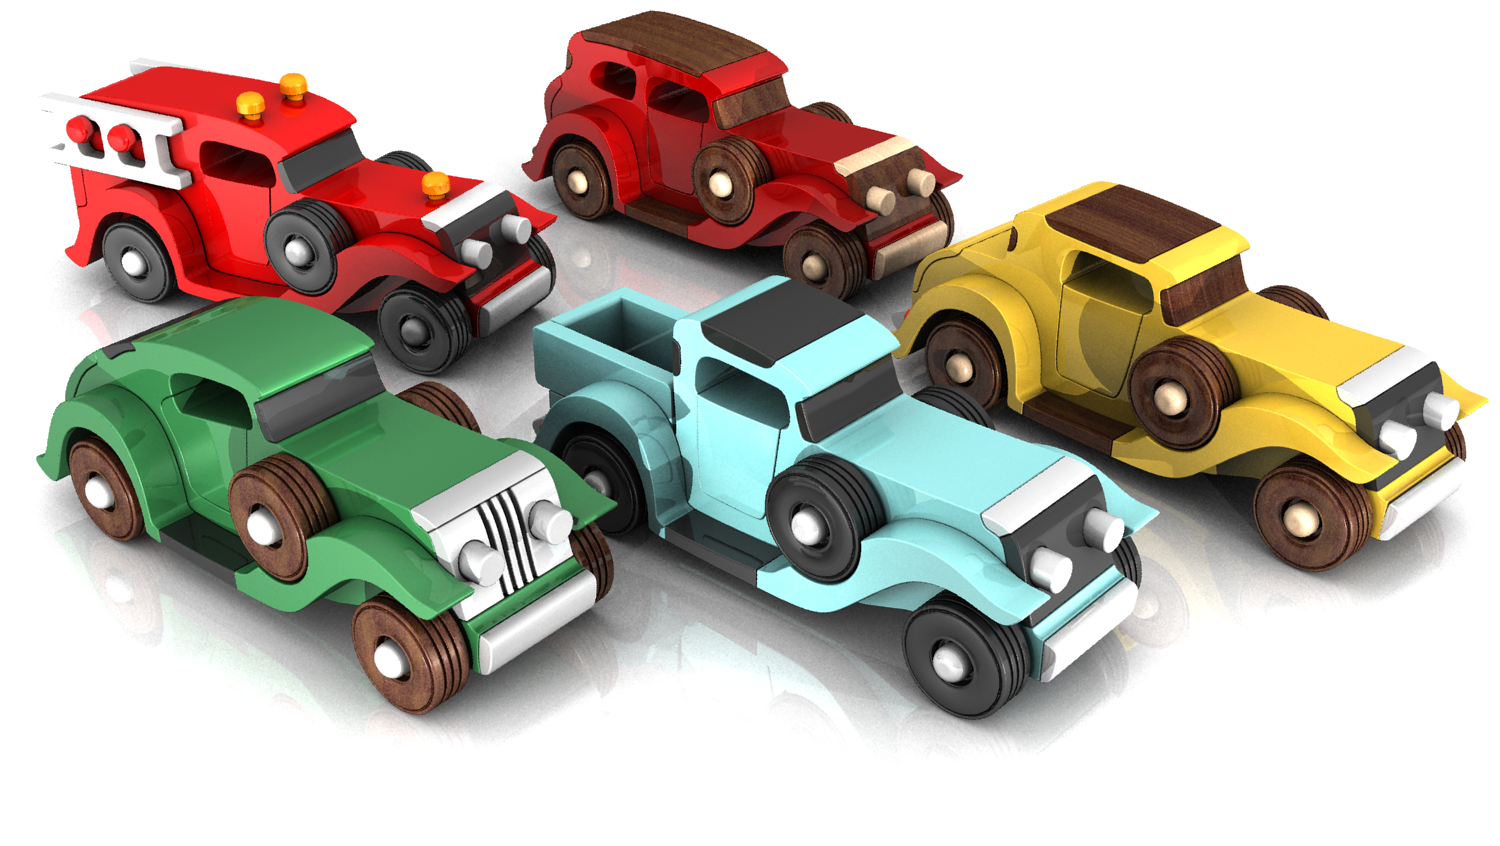 Toys car png  Handmade Wooden Toy Cars and Trucks Prototypes Quick N Easy Five